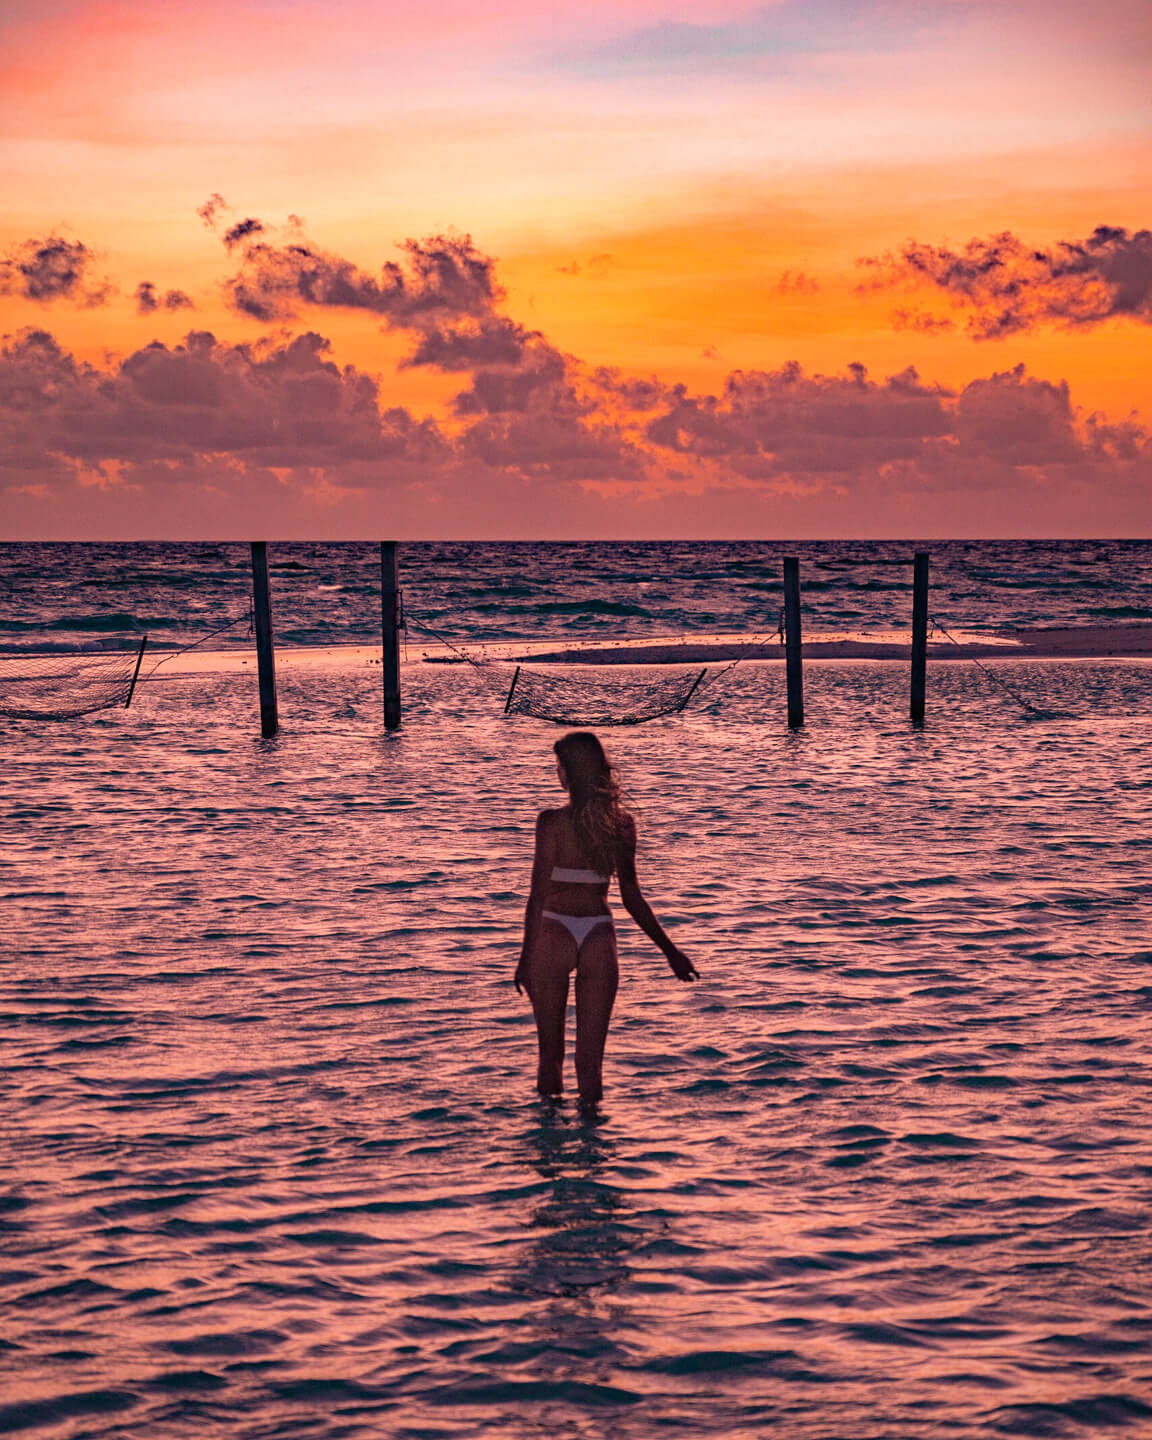 sunset at the sandnak in the ocean in the maldives